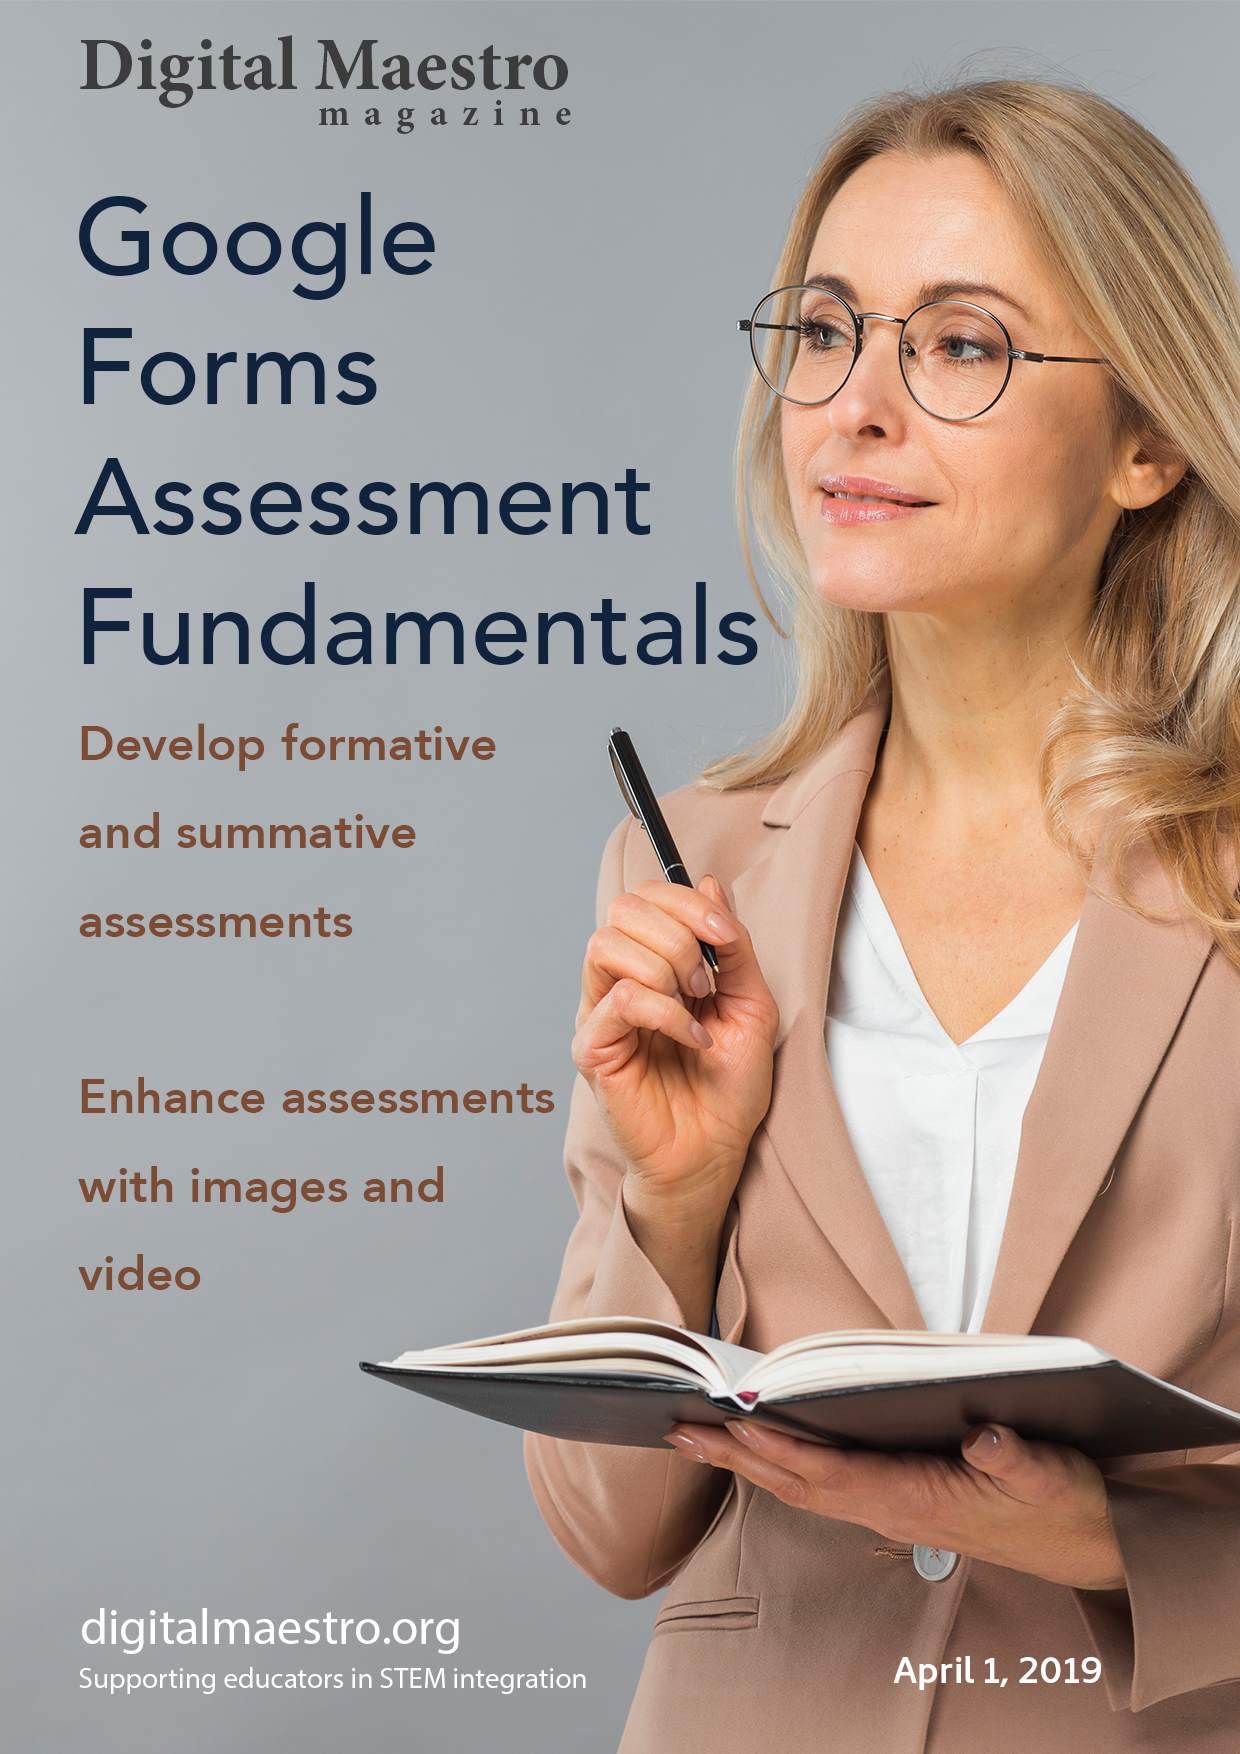 Google Forms Assessment Fundamentals - Learn how to create basic assessments with Google Forms. Use student feedback to support students. Use validation to help grade quizzes. Set minimum paragraph length for student responses.